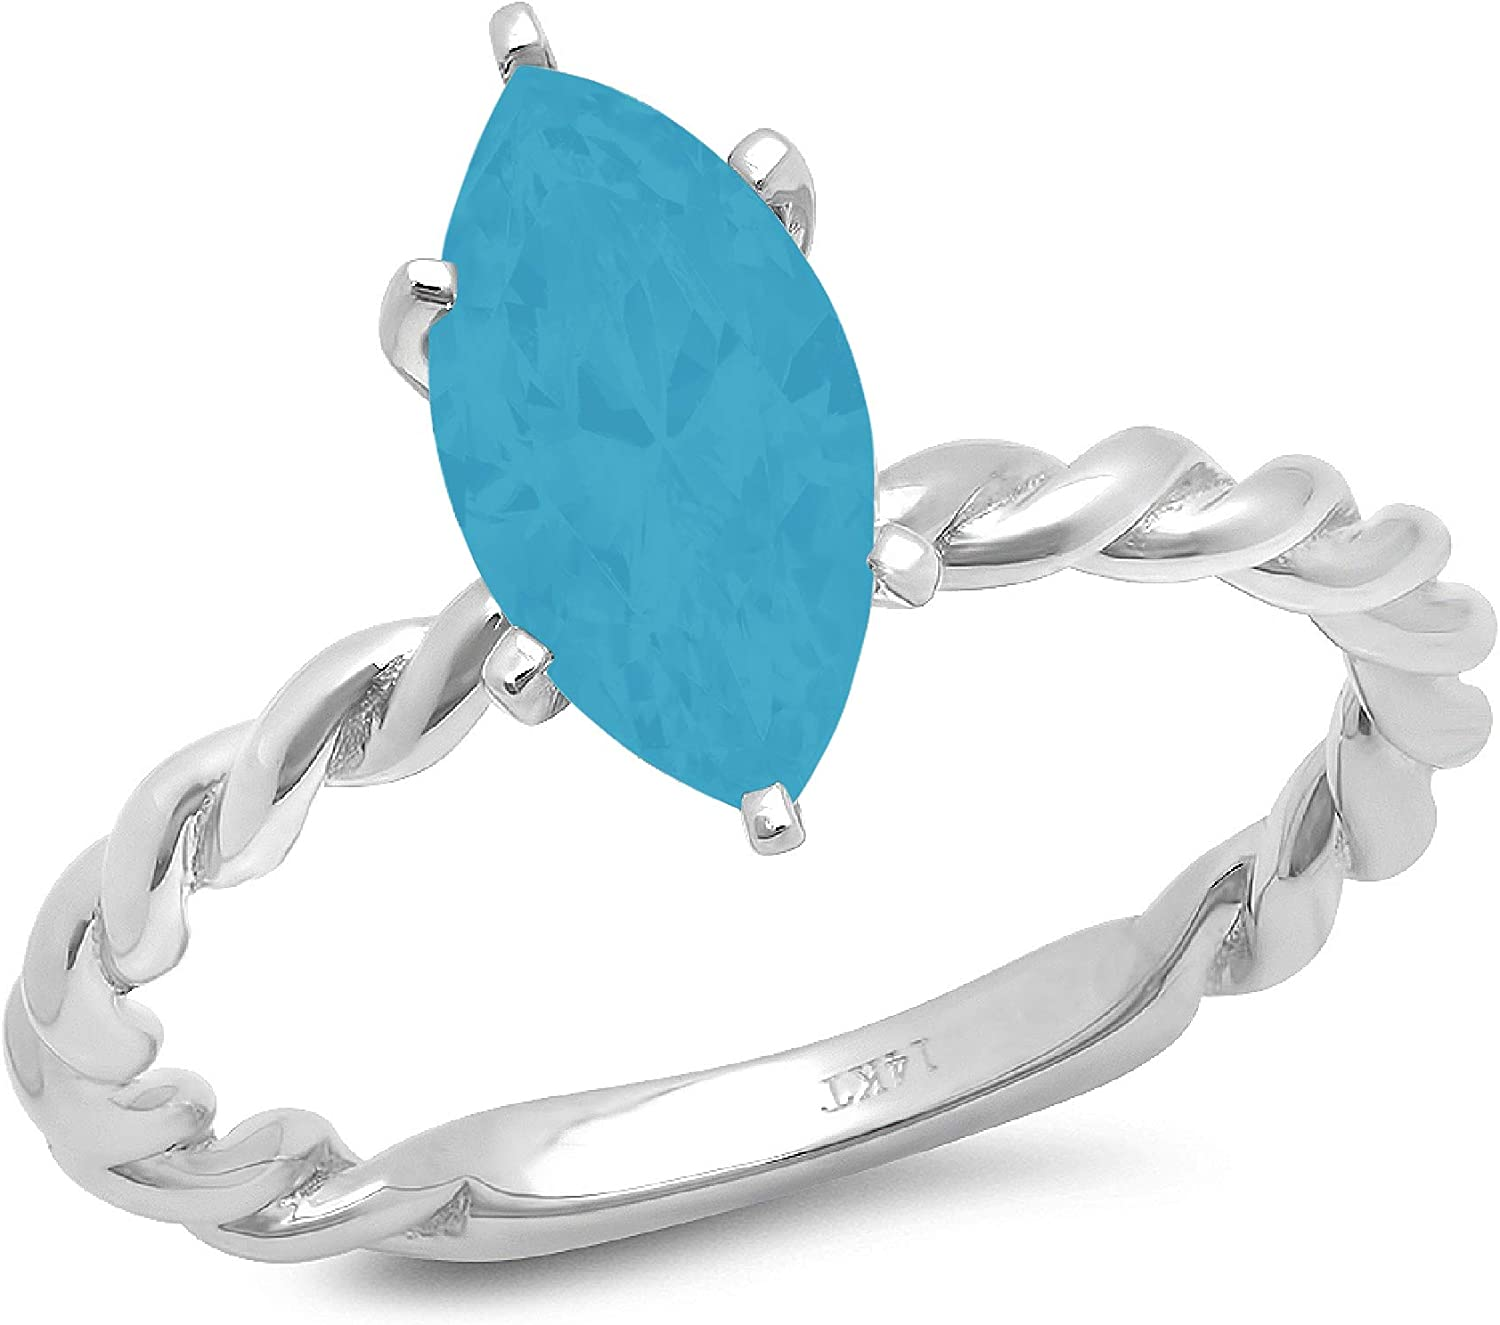 1.9ct Marquise Cut Solitaire Rope Twisted Knot Flawless Simulated CZ Blue Turquoise Ideal 6-Prong Engagement Wedding Bridal Promise Anniversary Designer Ring Solid 14k White Gold for Women